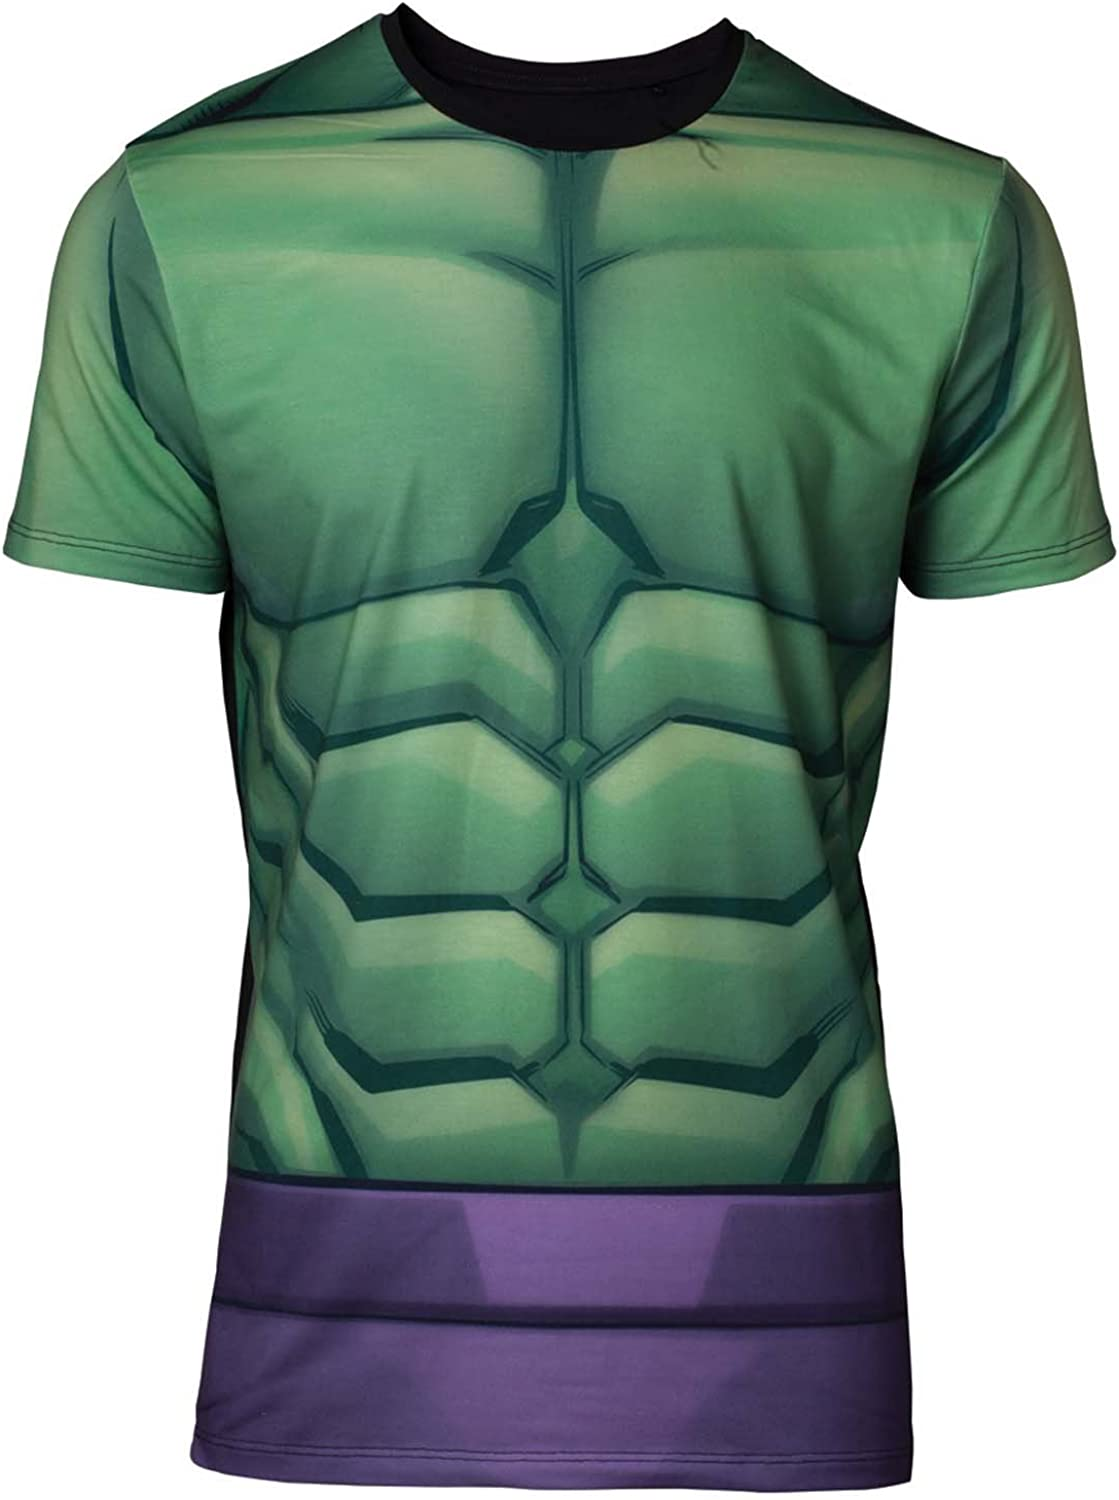 INCREDIBLE HULK Bruce Banner Gamer Comic Book Children/'s t-shirt *ALL AGES*